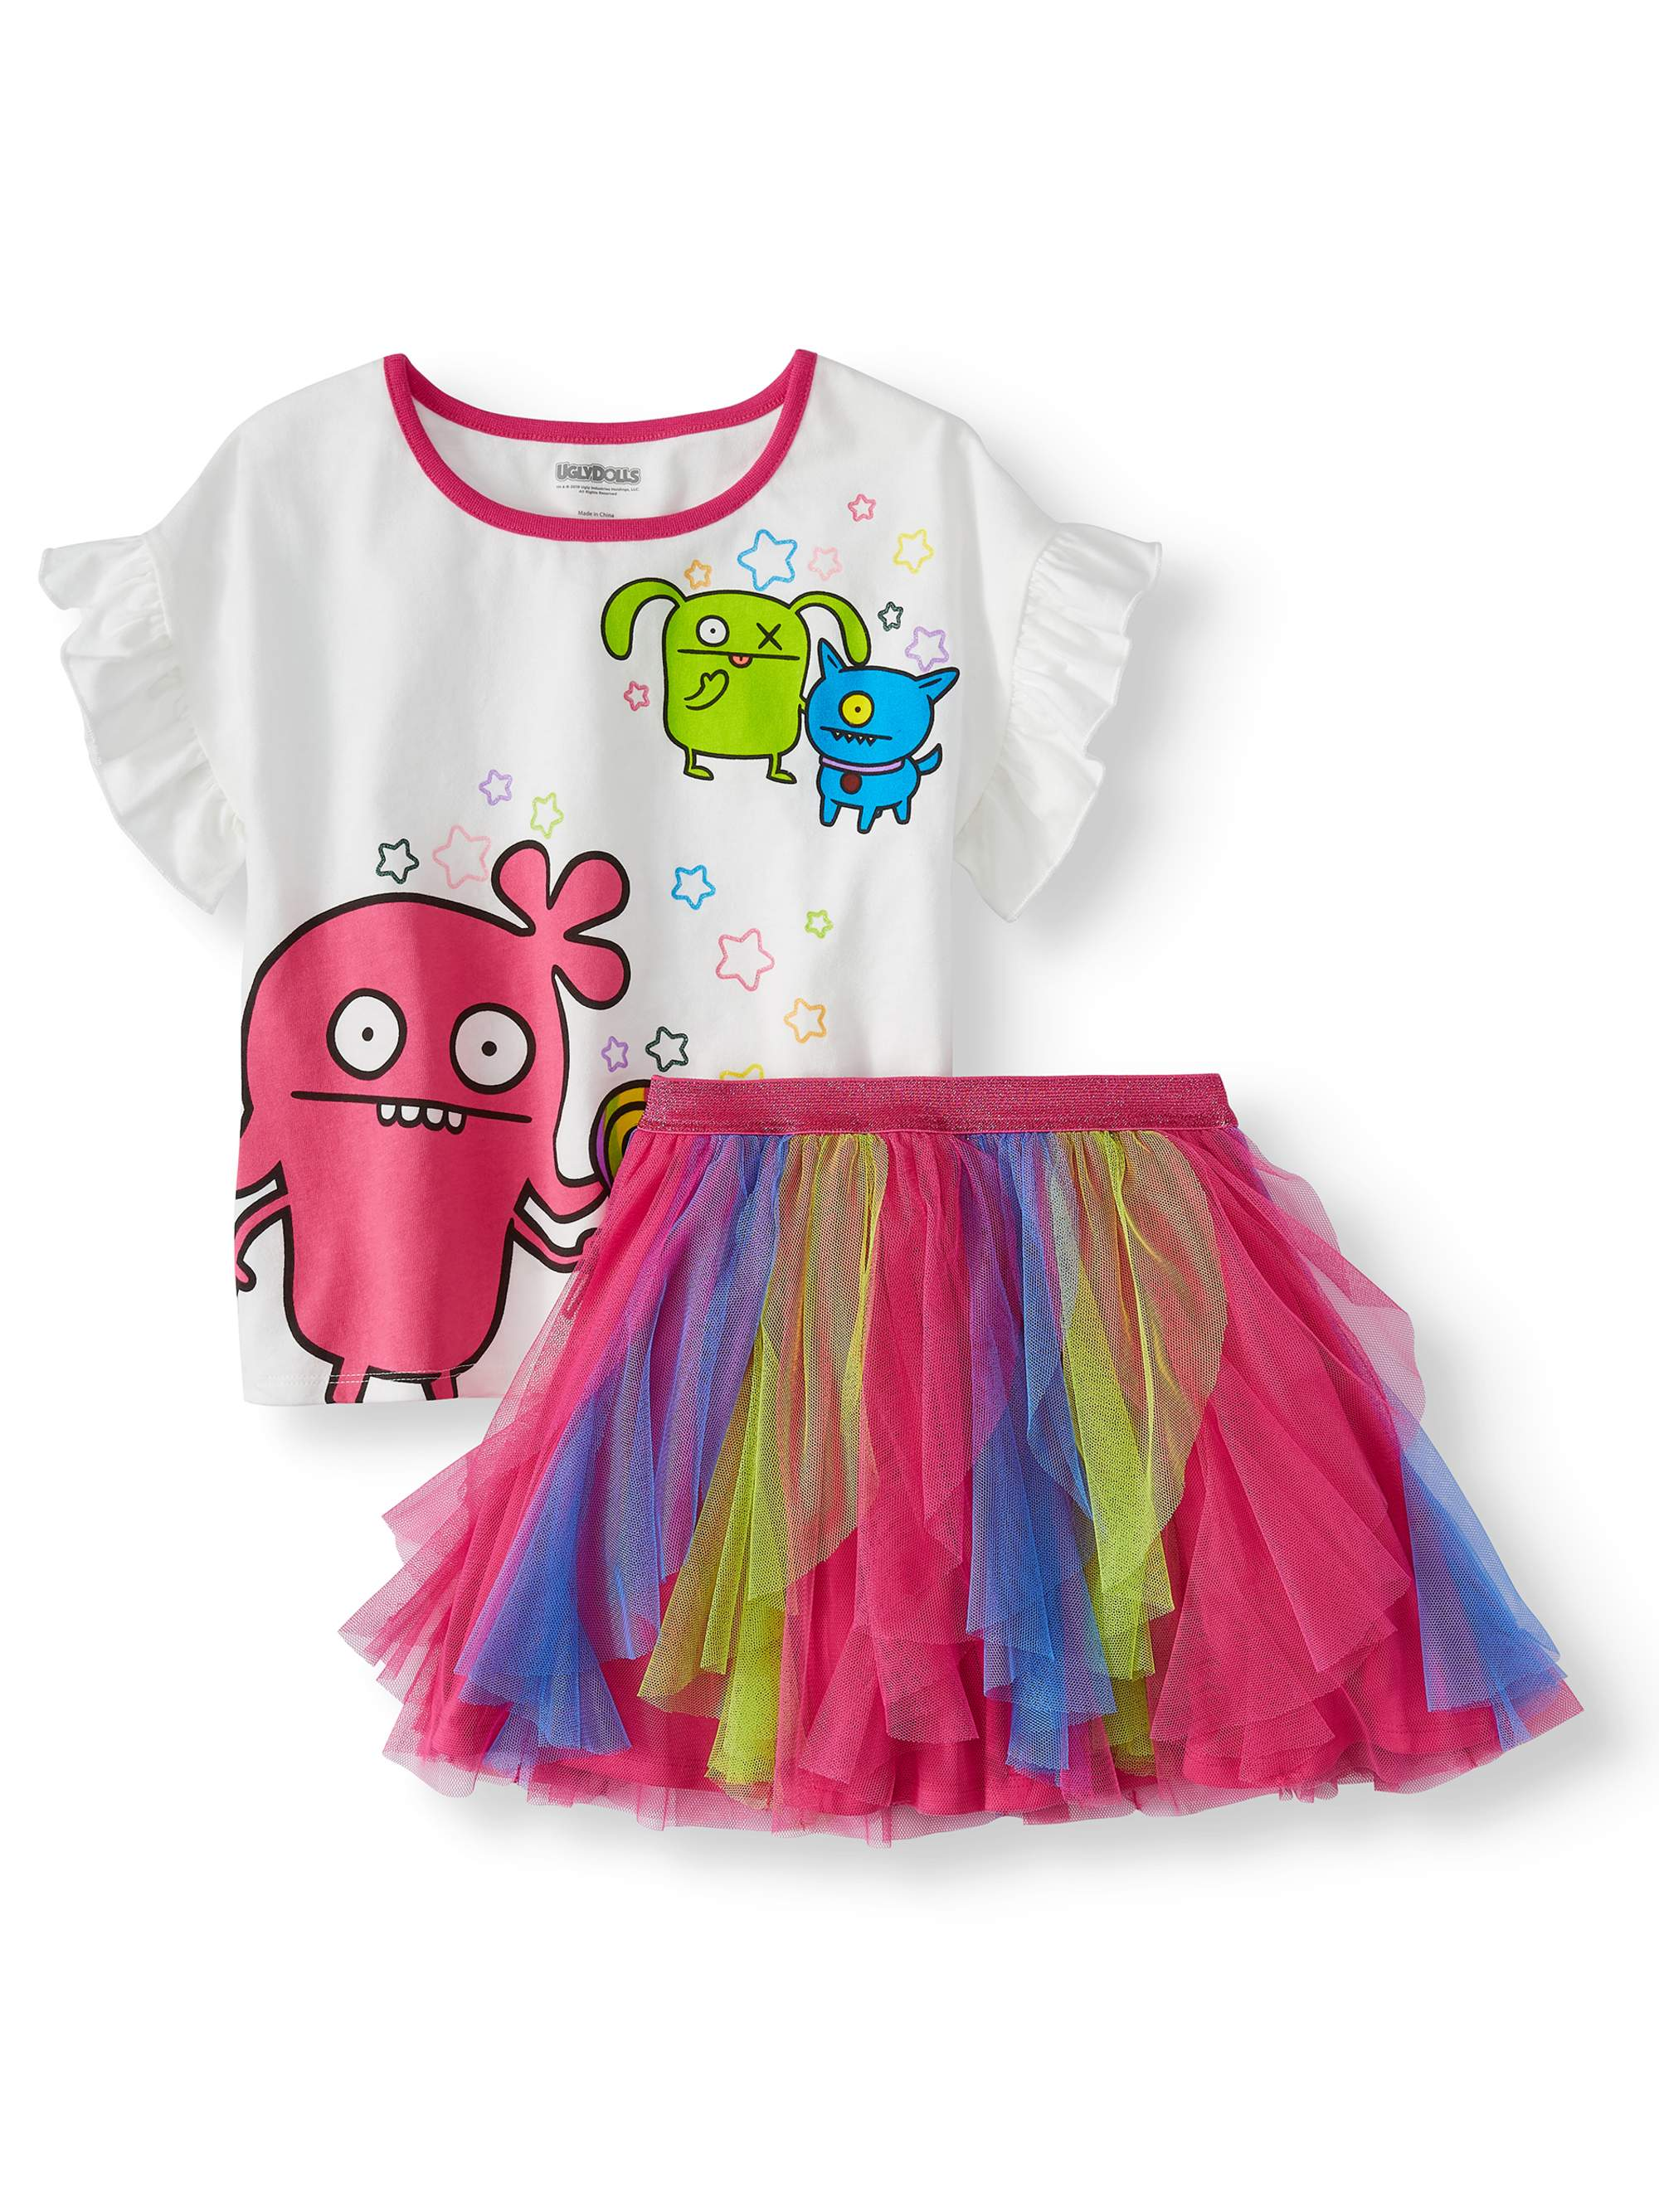 117ea65bf Ugly Dolls - Ruffled Tee and Colorblock Tulle Mesh Tutu Skirt, 2-Piece  Outfit Set (Little Girls & Big Girls) - Walmart.com